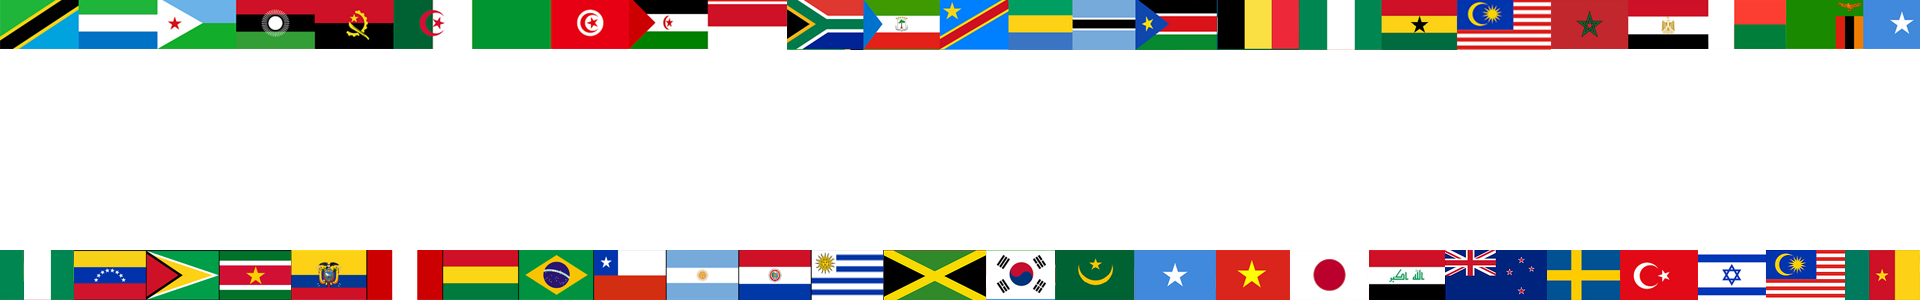 International flag border clipart images gallery for free download.